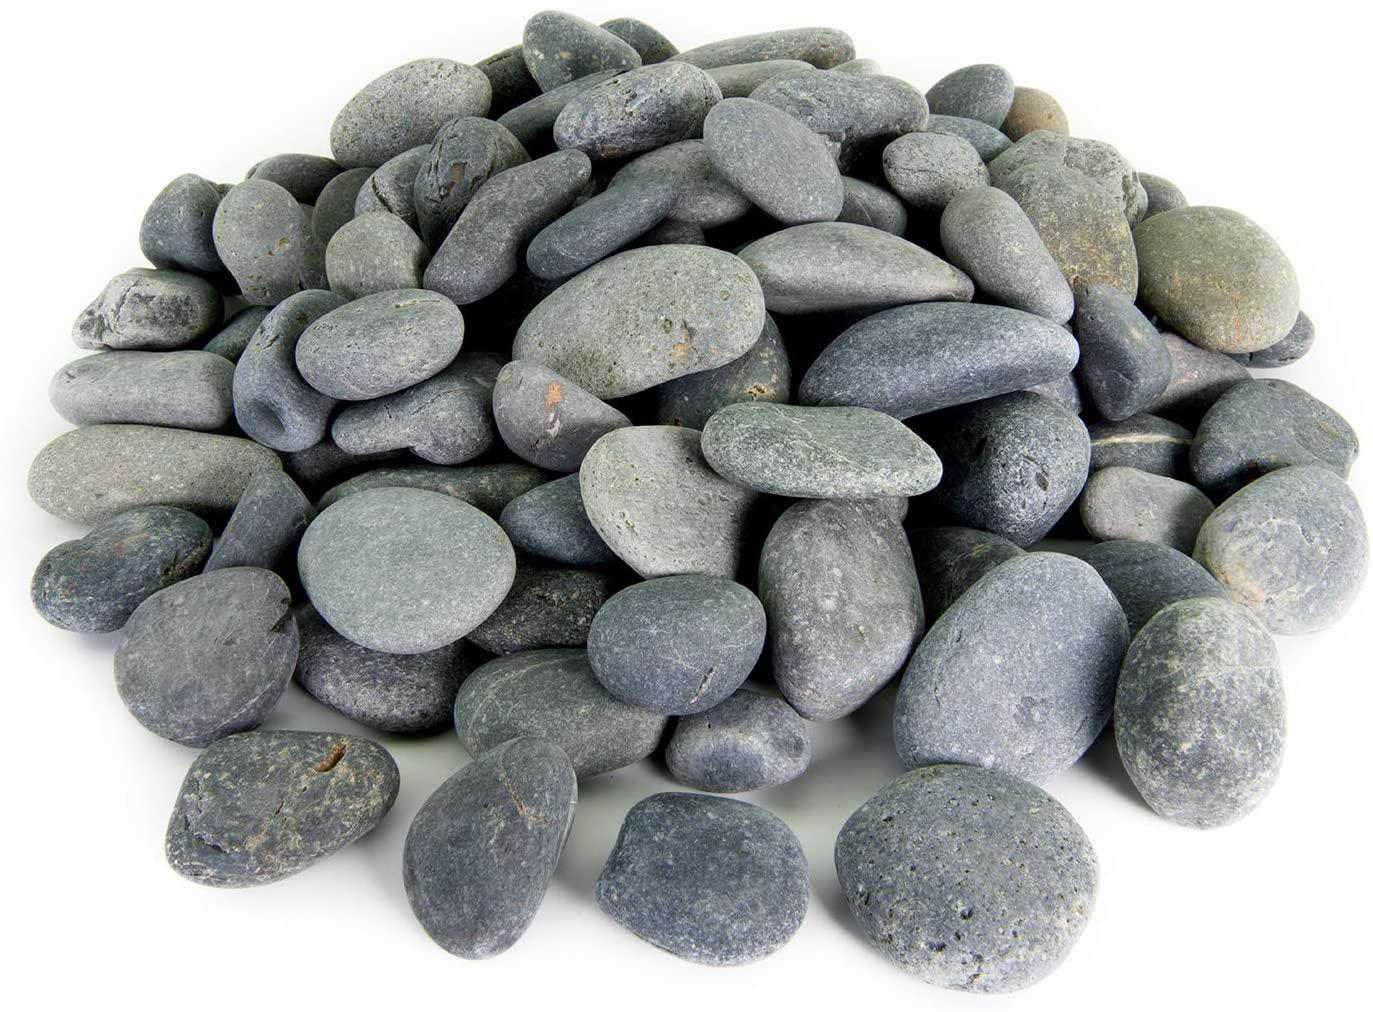 Amazon Com Mexican Beach Pebbles 20 Pounds Of Smooth Unpolished Stones Hand Picked Premium Pebbles For Garden And Landscape Design Black 3 Inch 5 Inch Garden Outdoor